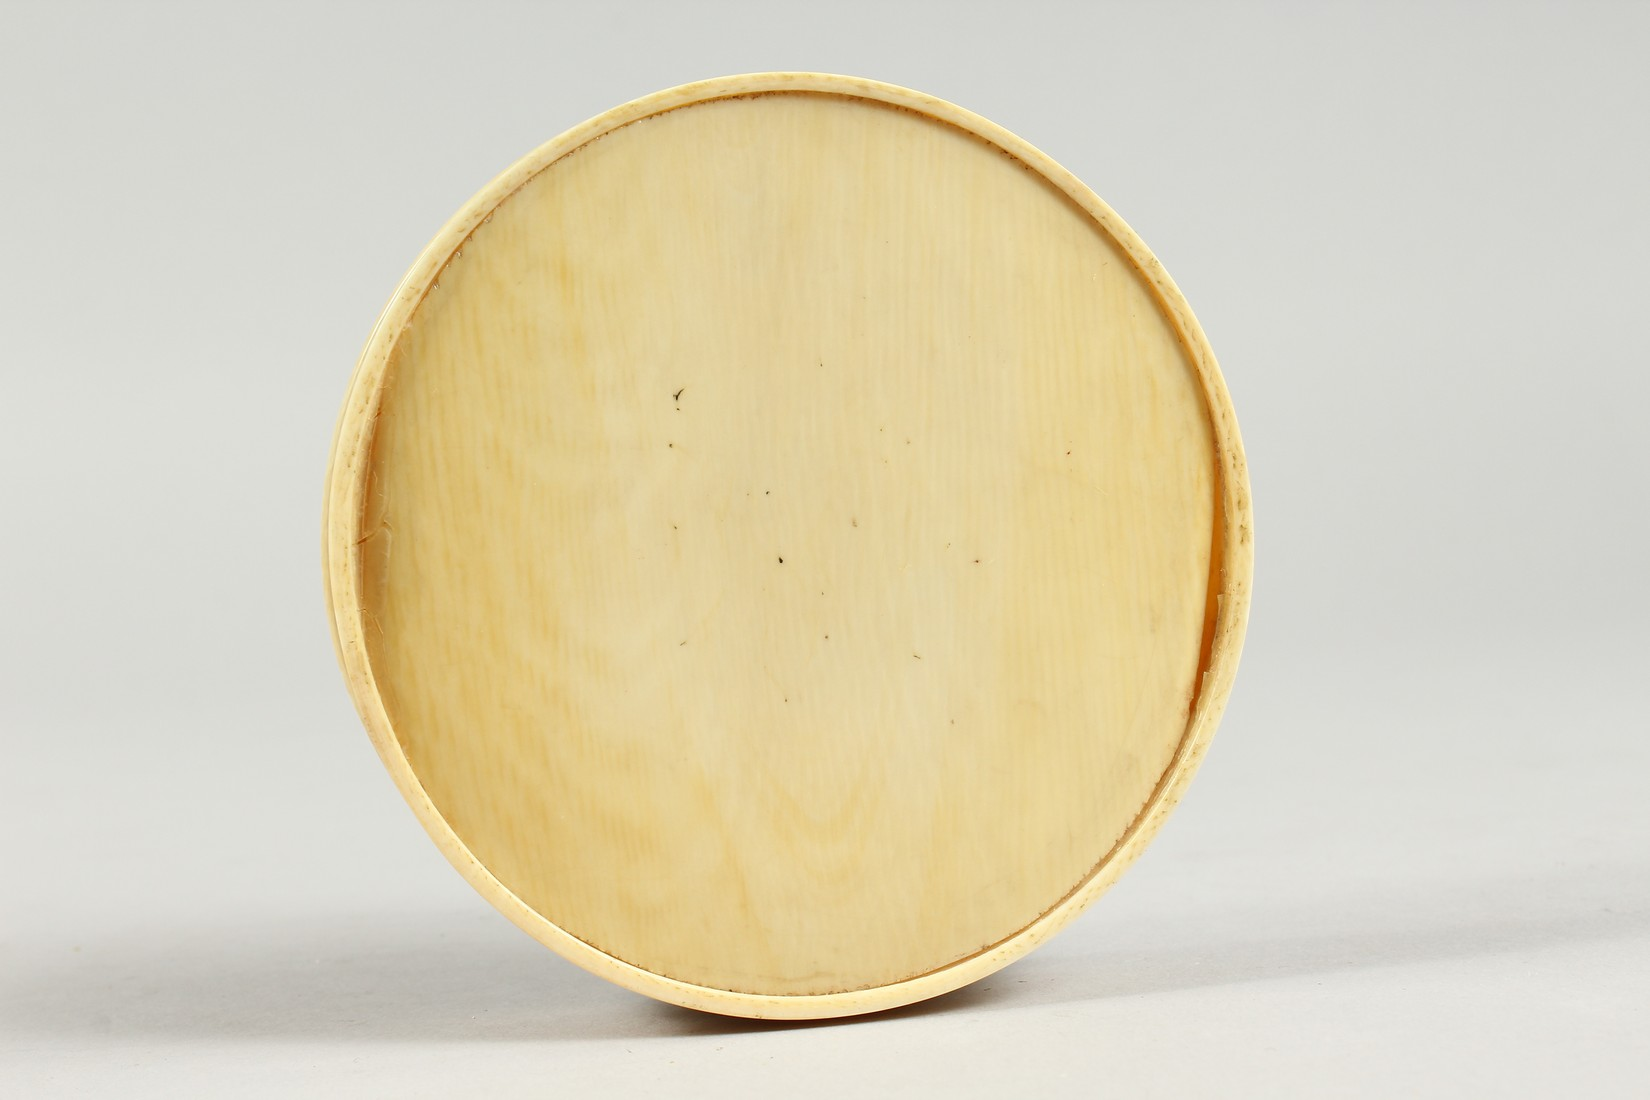 A GEORGIAN IVORY CIRCULAR BOX, the top painted with a portrait of Lady Mary Onslow. 3.75ins - Image 7 of 8